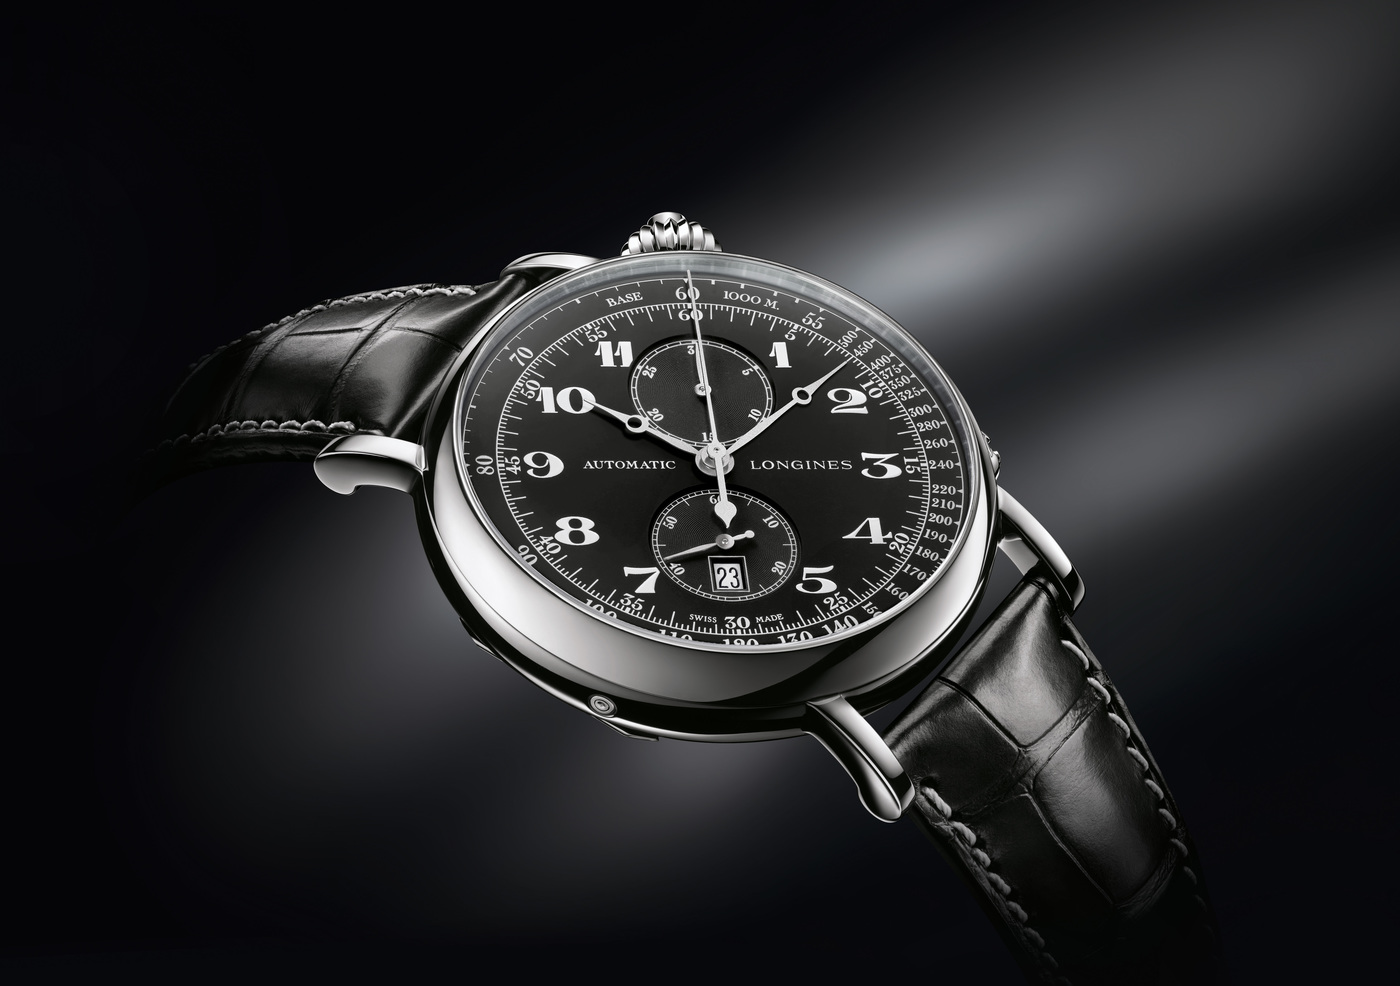 Longines The Longines Avigation Watch Type A-7 Watch 1